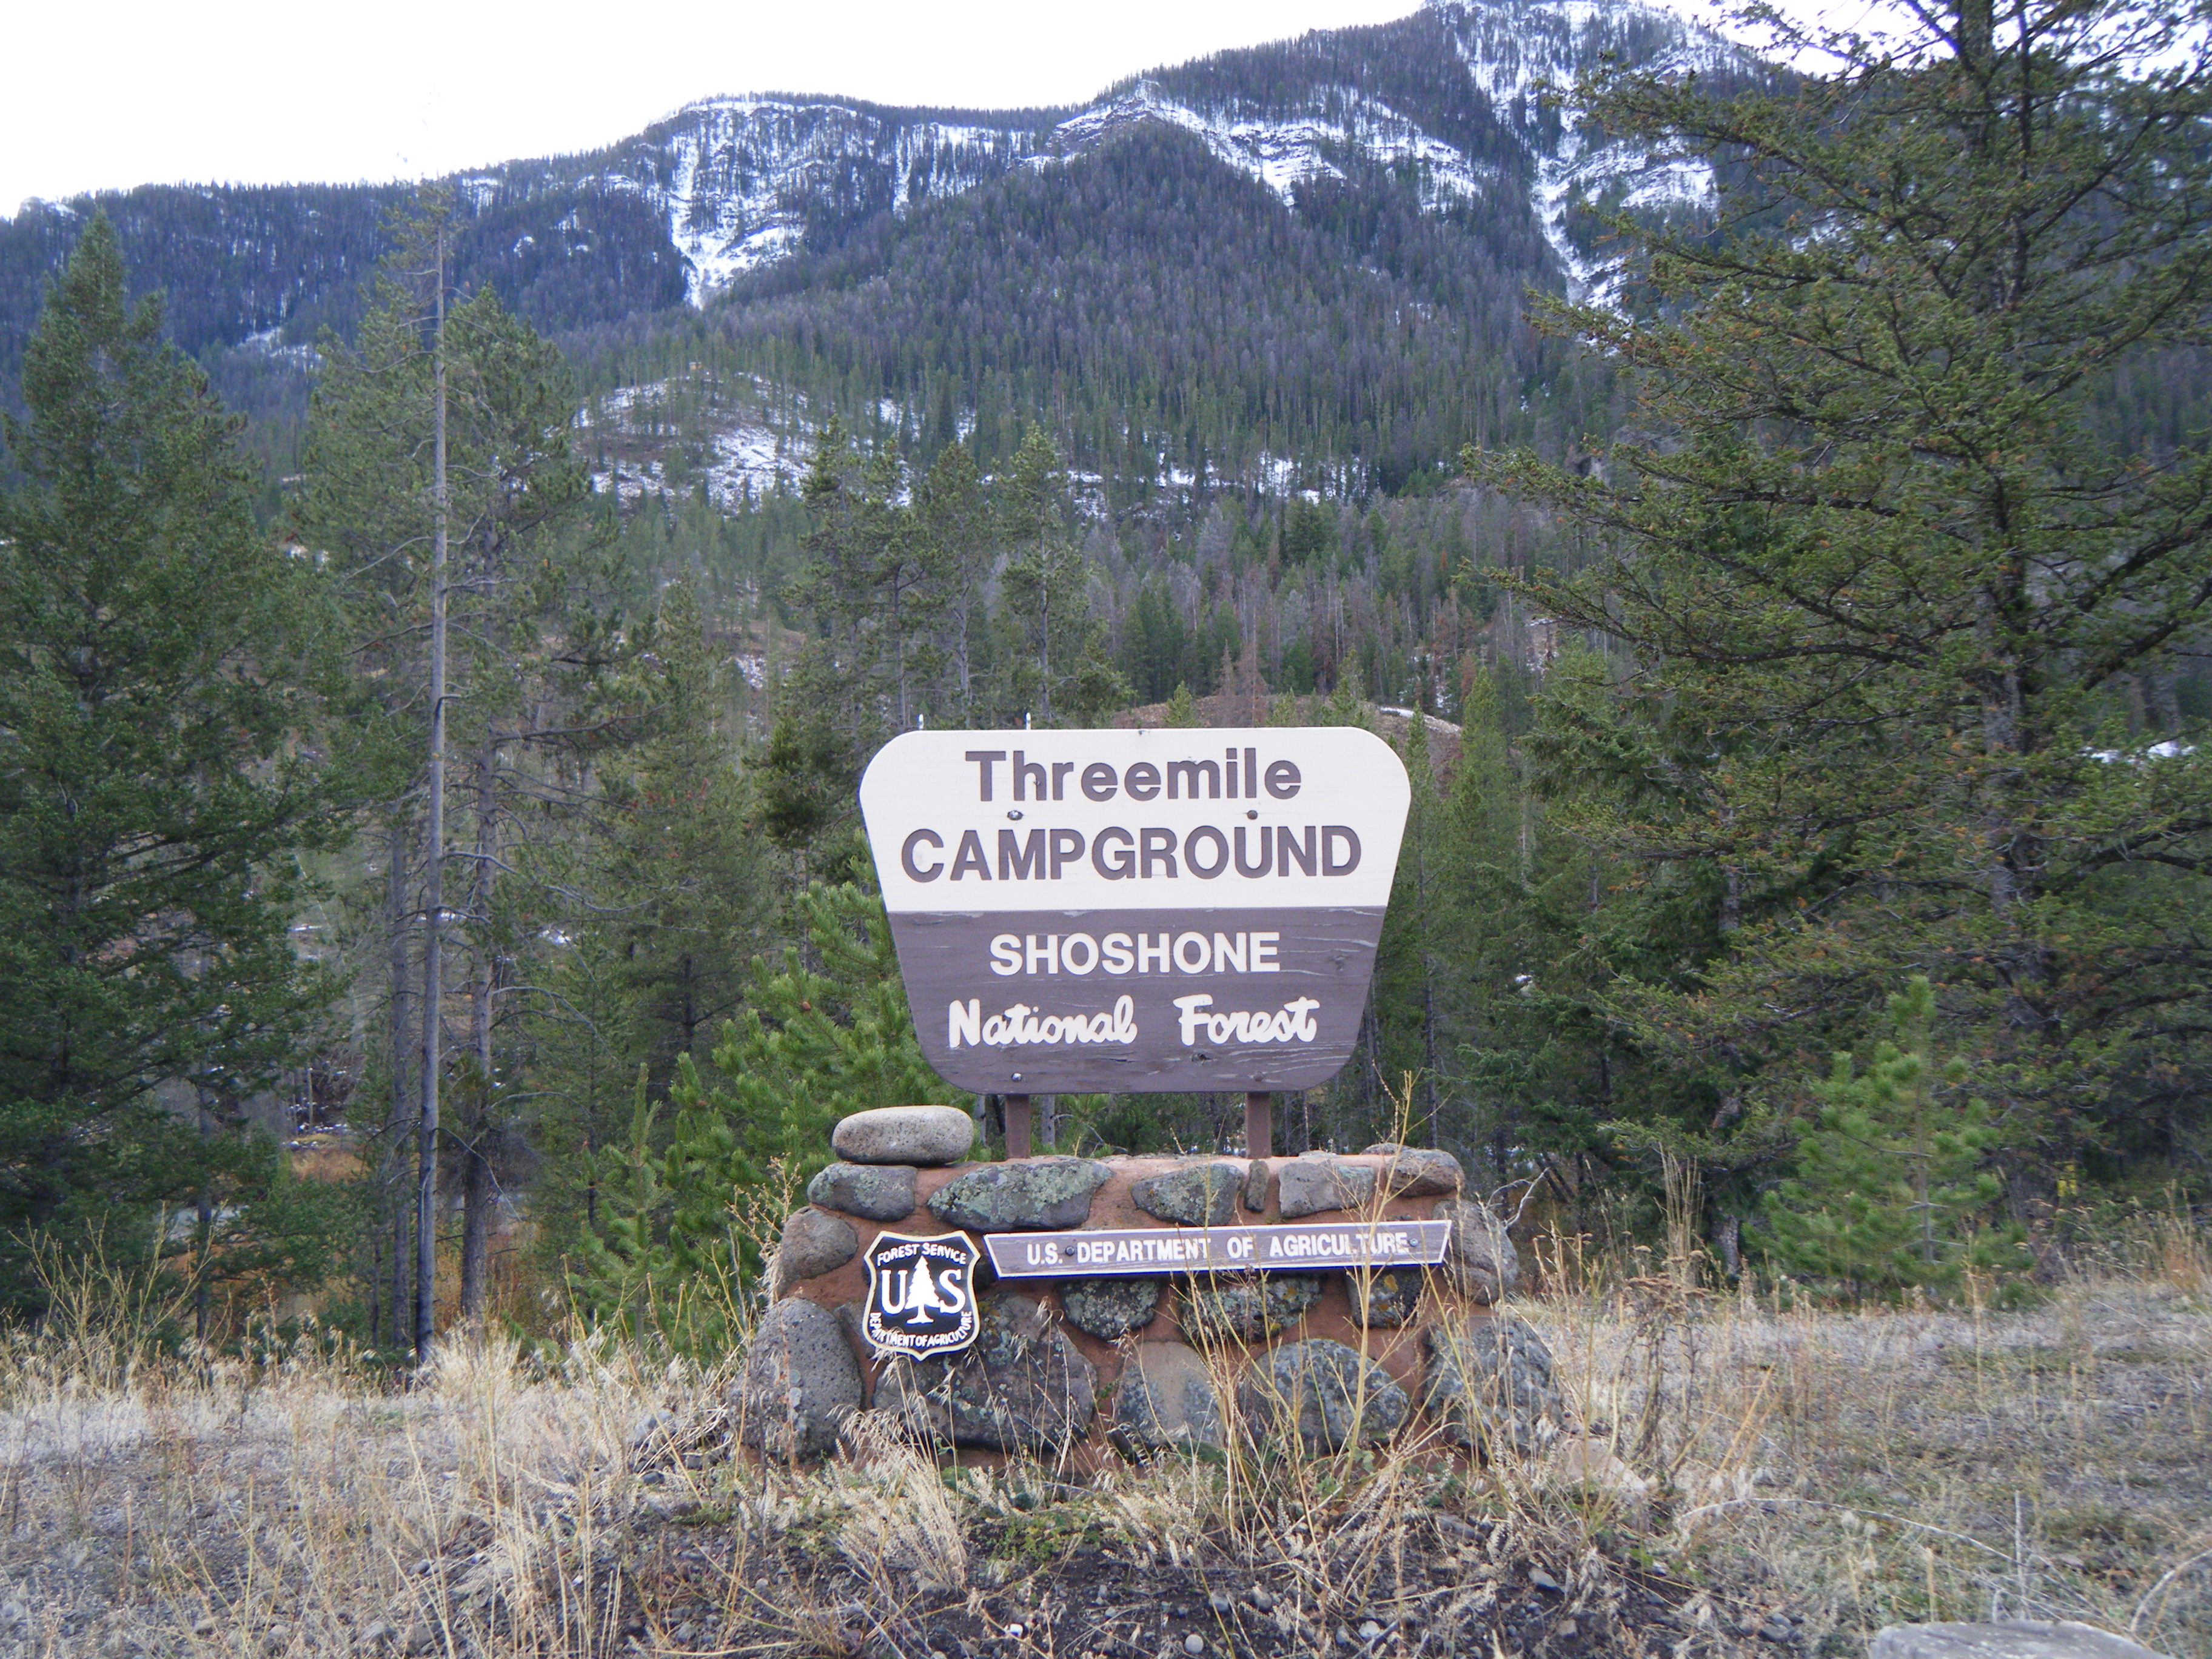 Photograph of Threemile Campground